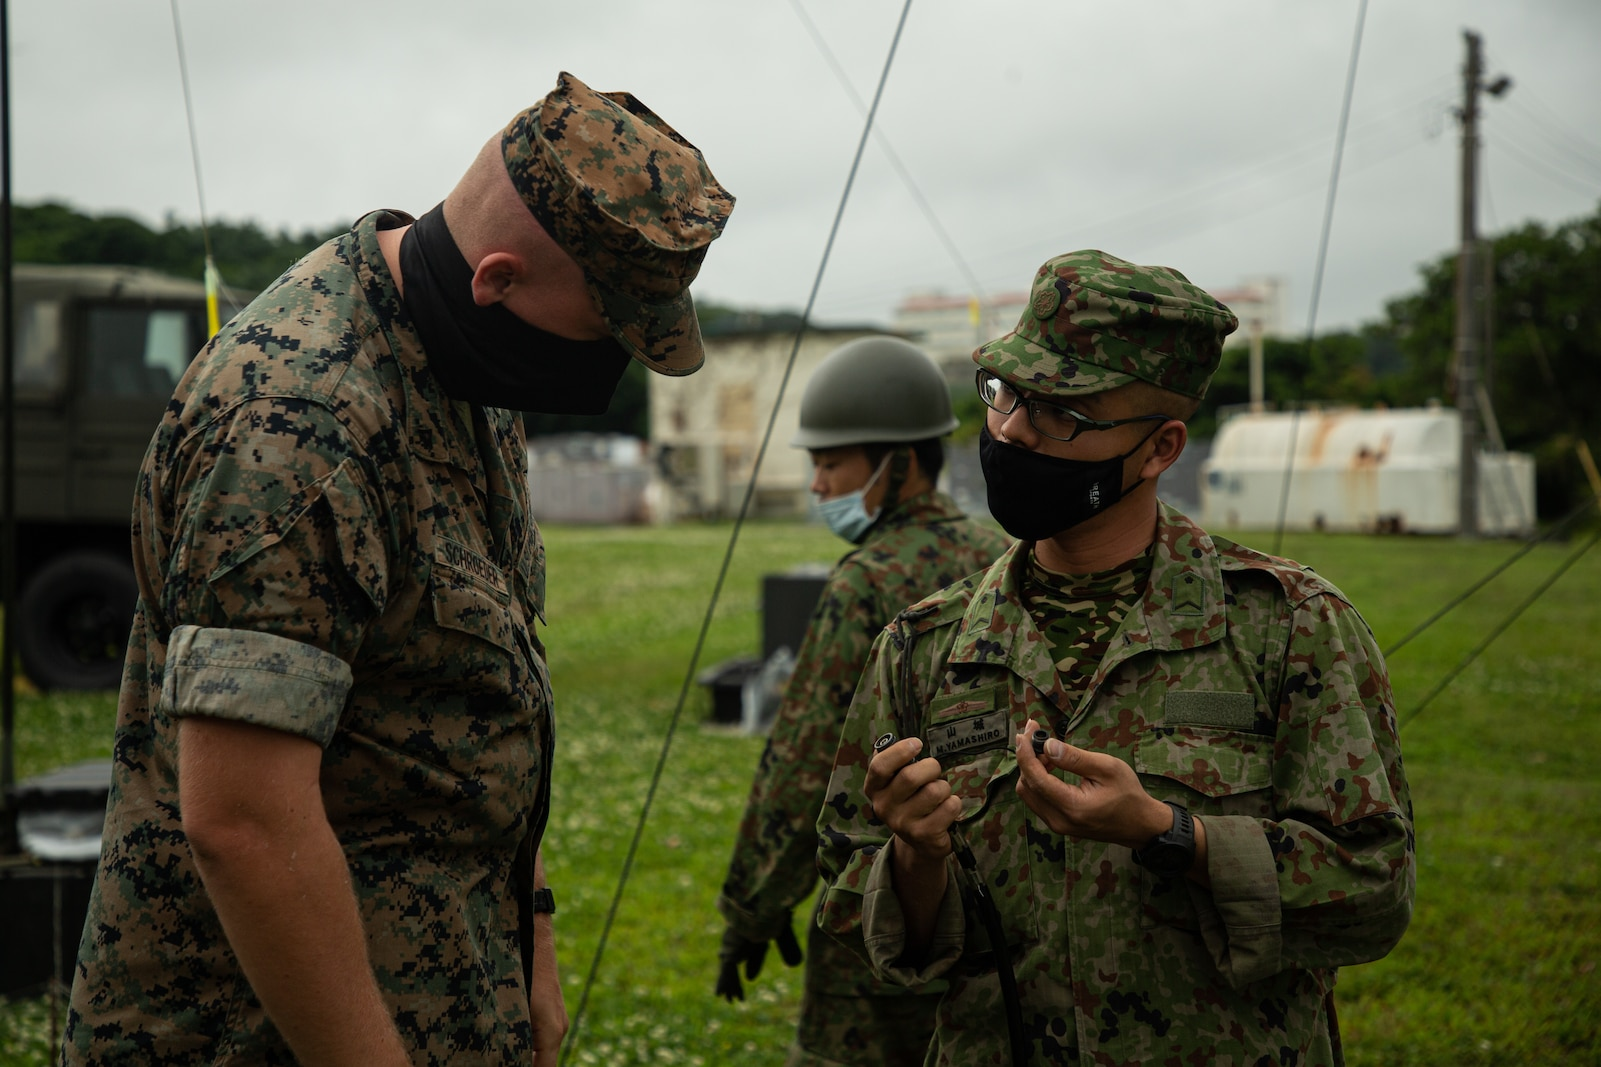 A U.S. Marine and a JGSDF soldier stand next to each other and discuss a piece of radio equipment held in the JGSDF member's hands in a grass field with military vehicles and equipment around them.